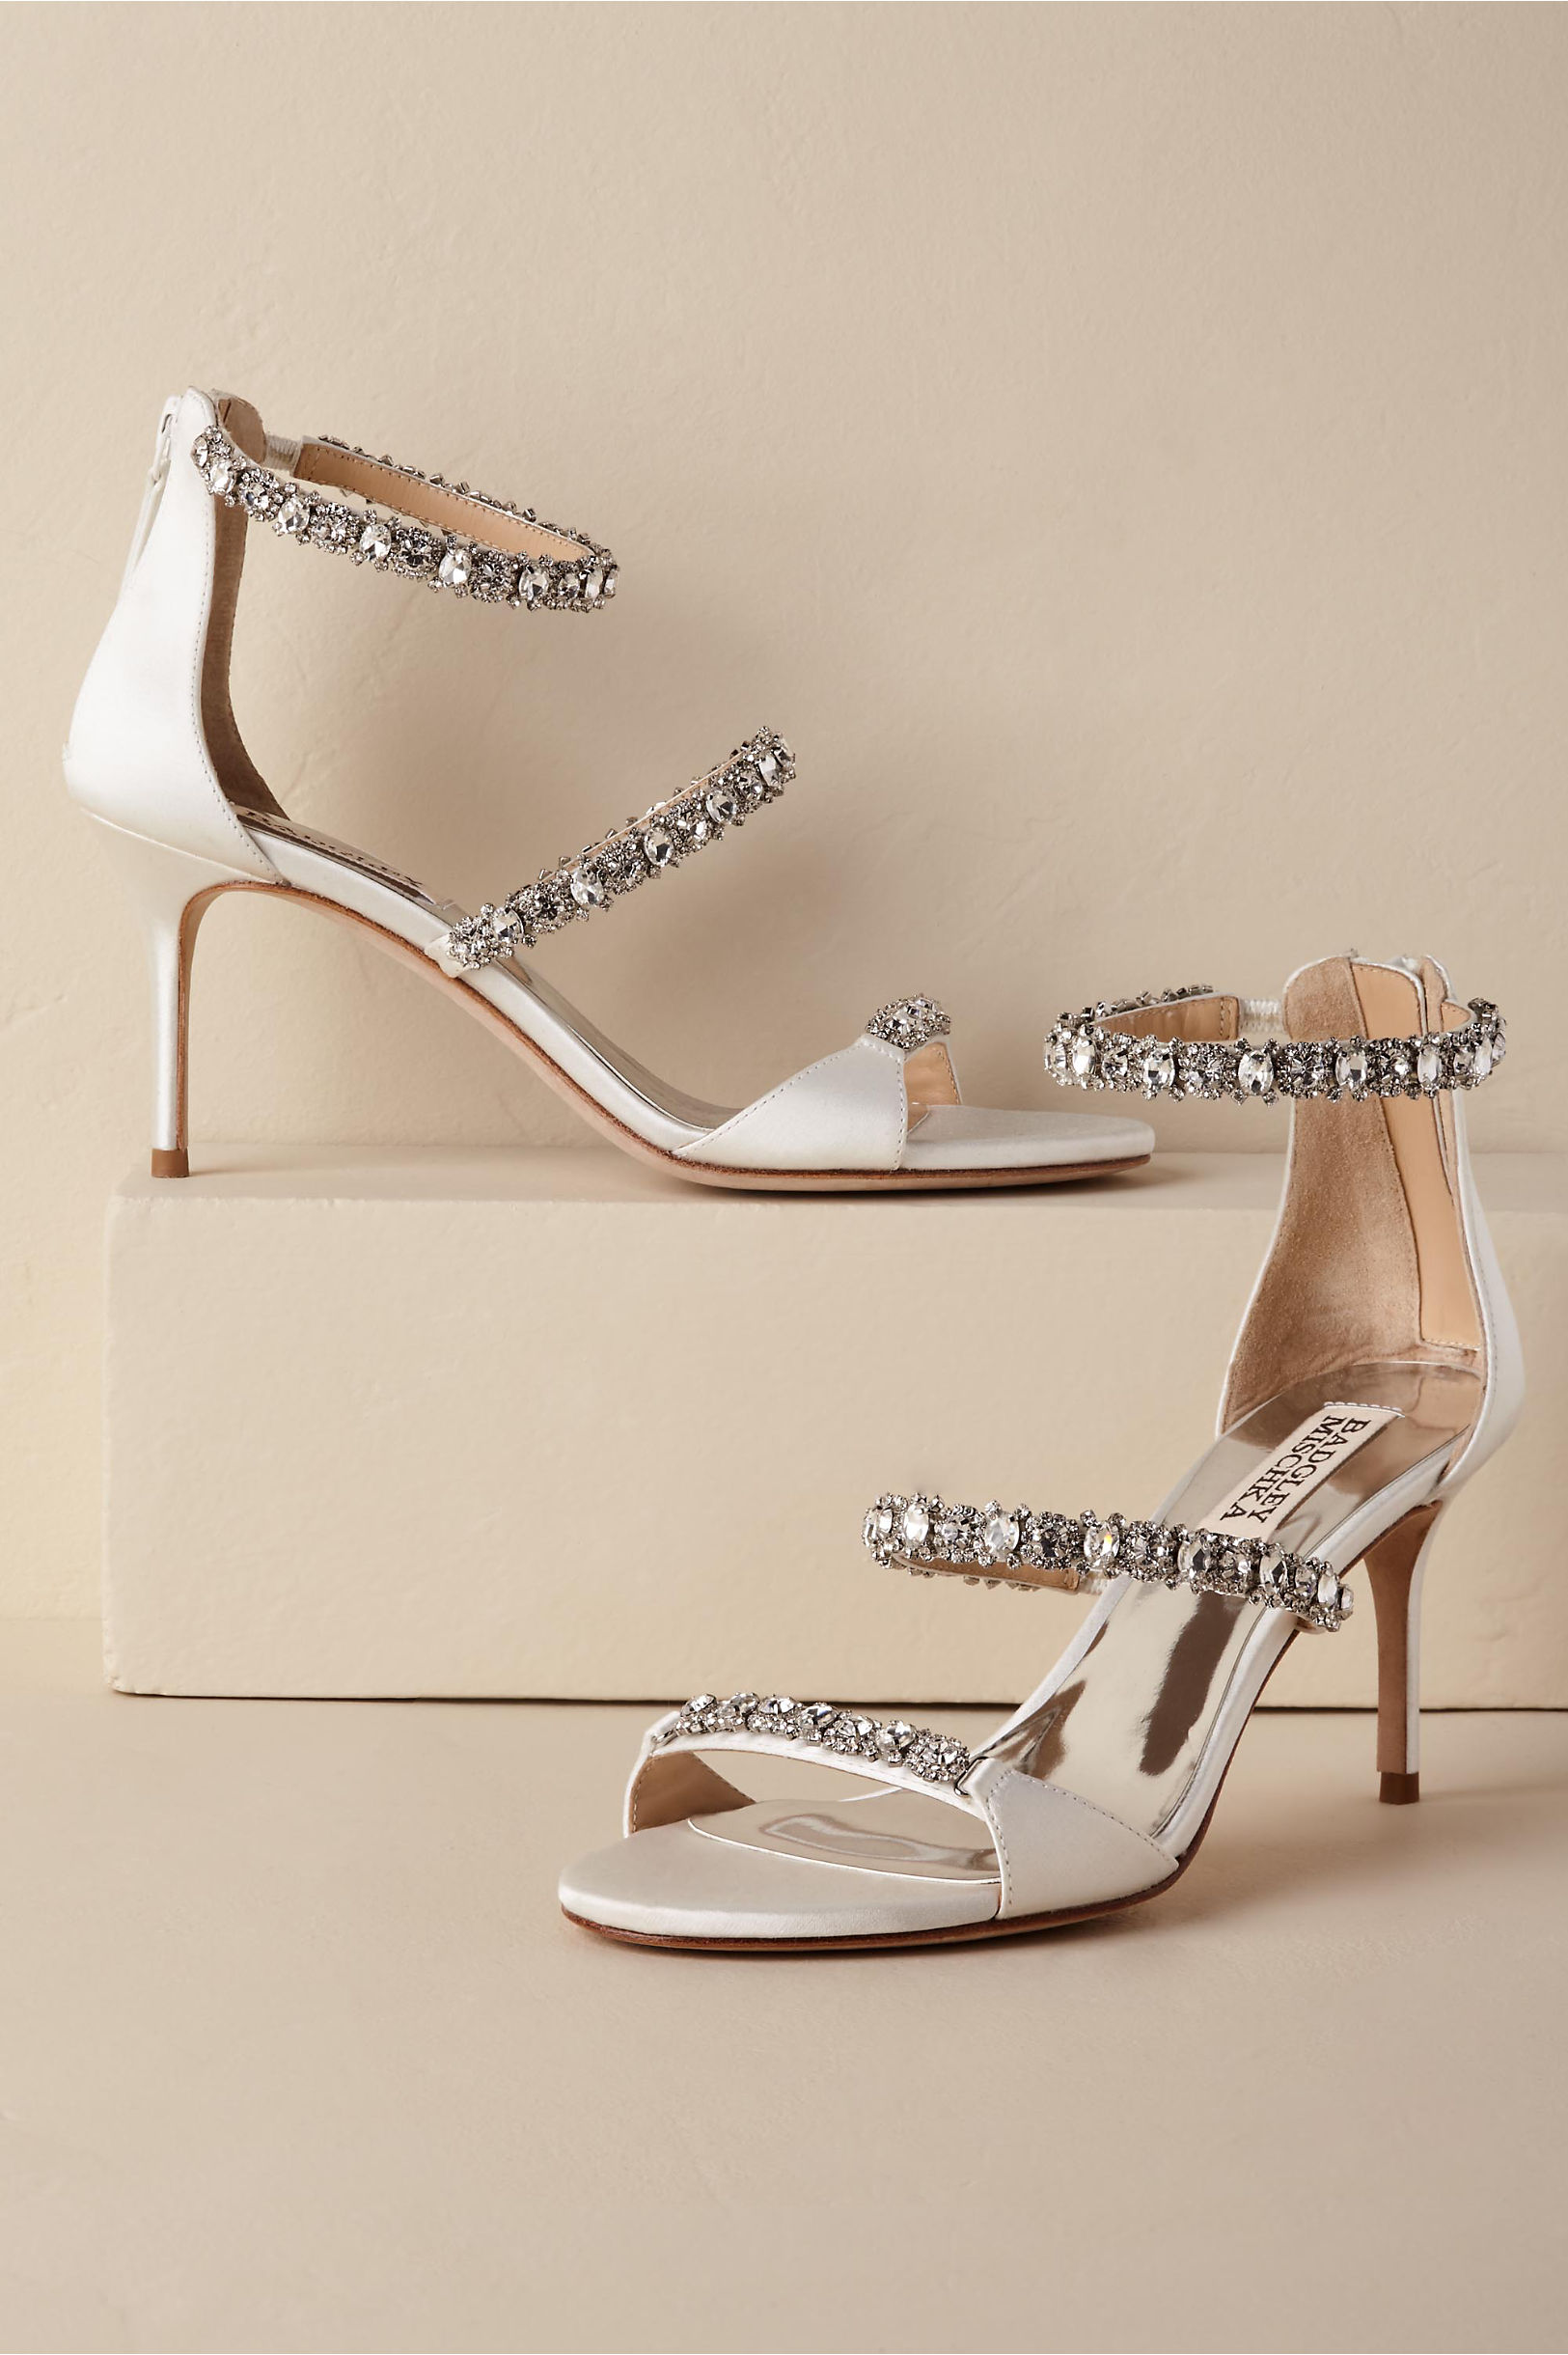 5854844a881c Badgley Mischka White Yasmine Heel